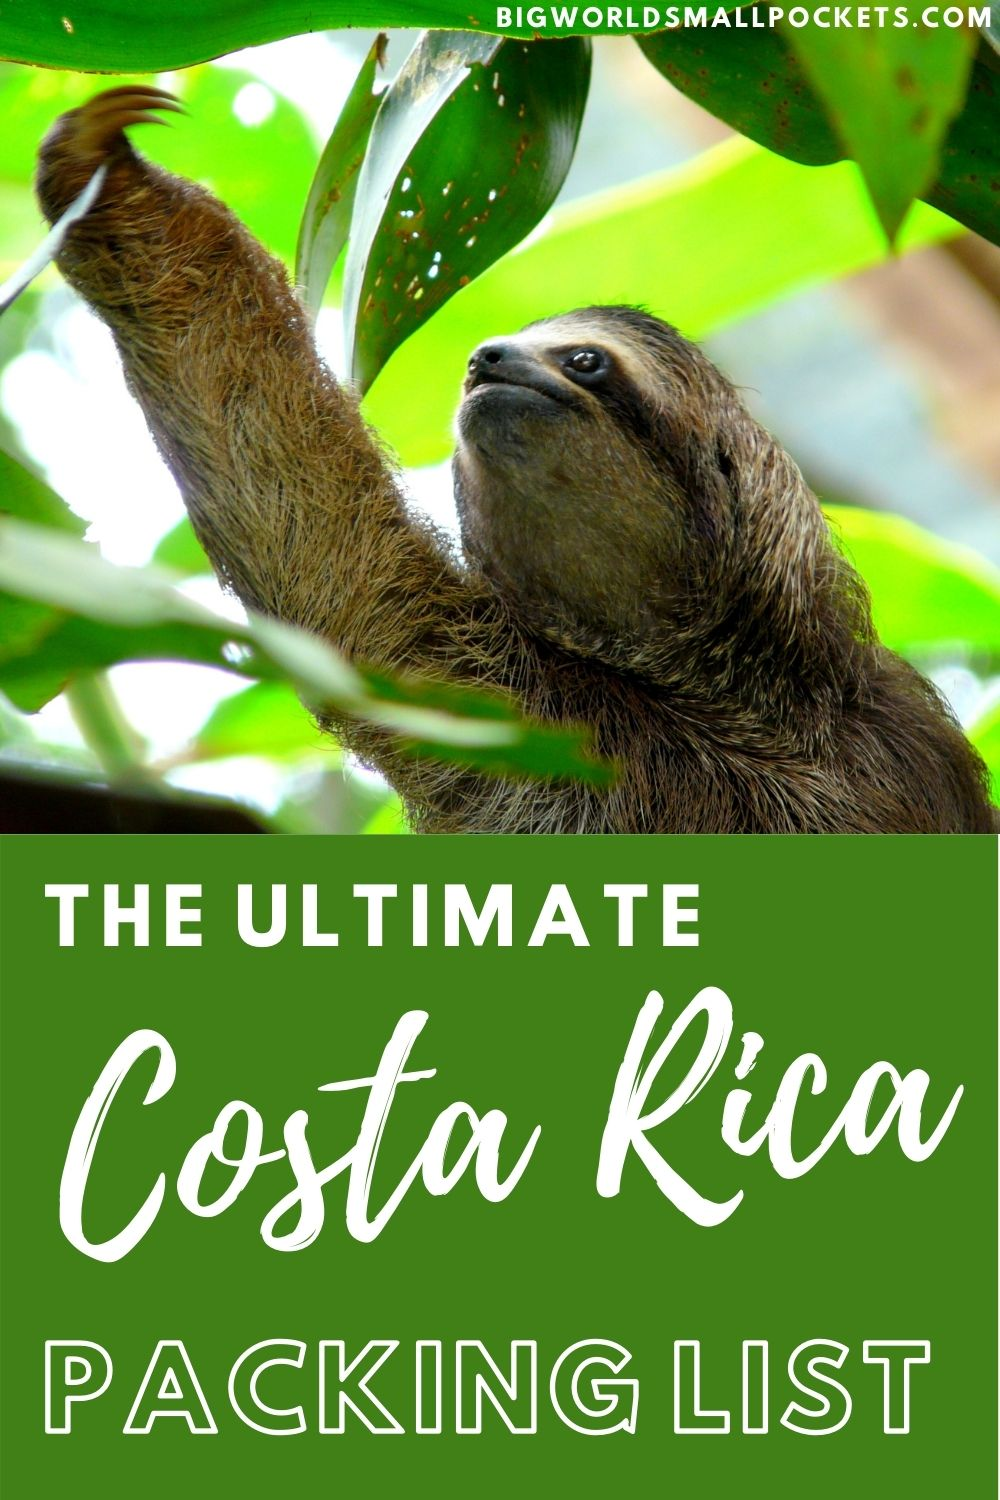 The Complete Packing Guide for Costa Rica